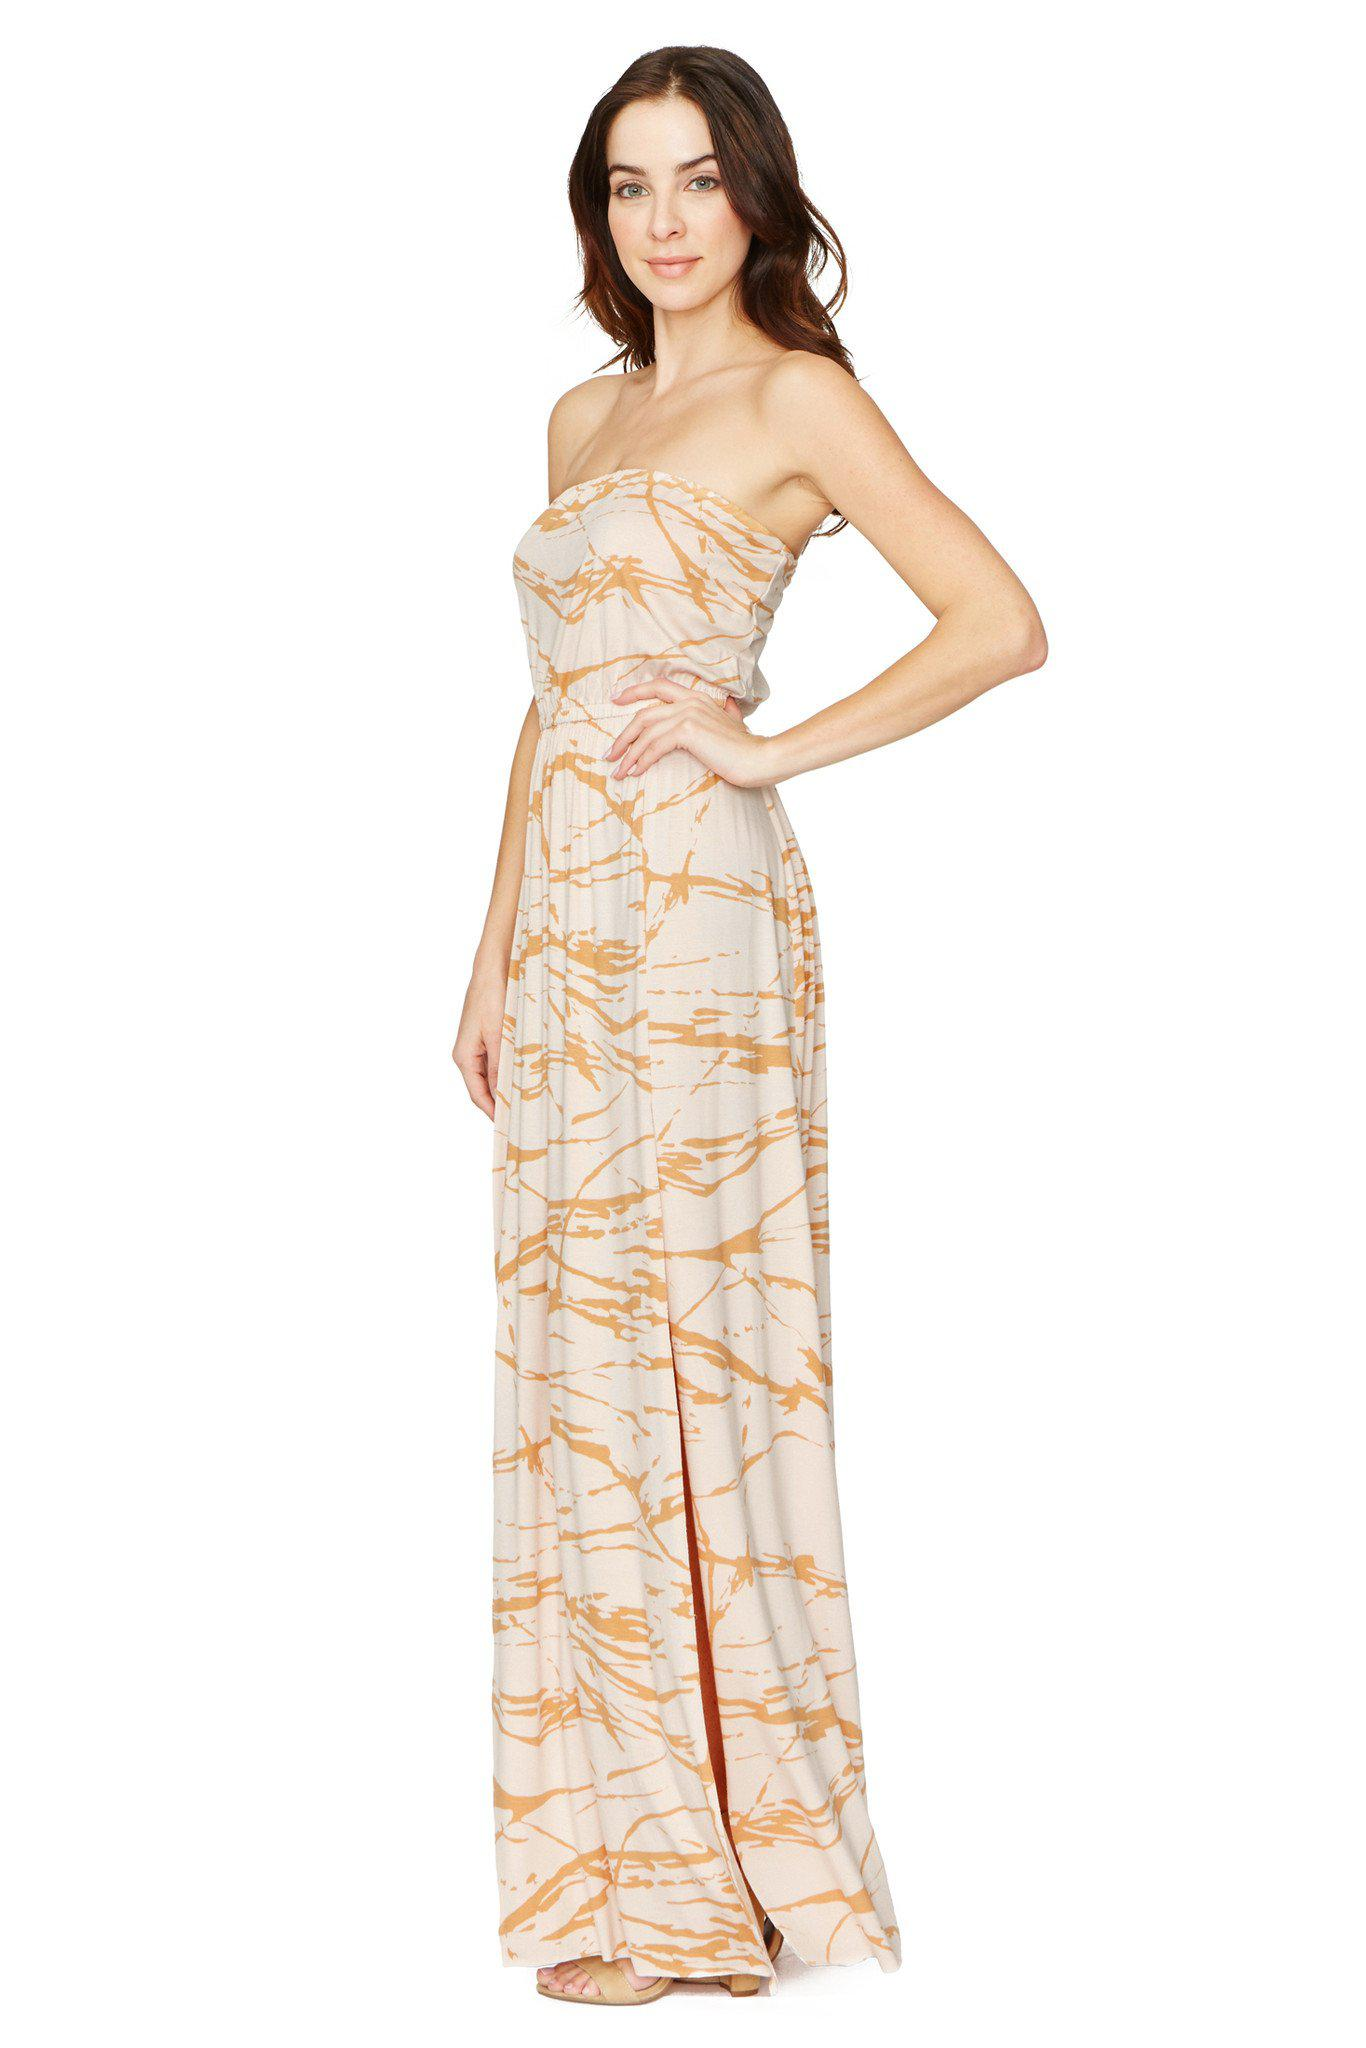 Lyst - Rachel Pally Luletta Dress - Champagne Reverie in Pink 2ffb0095d